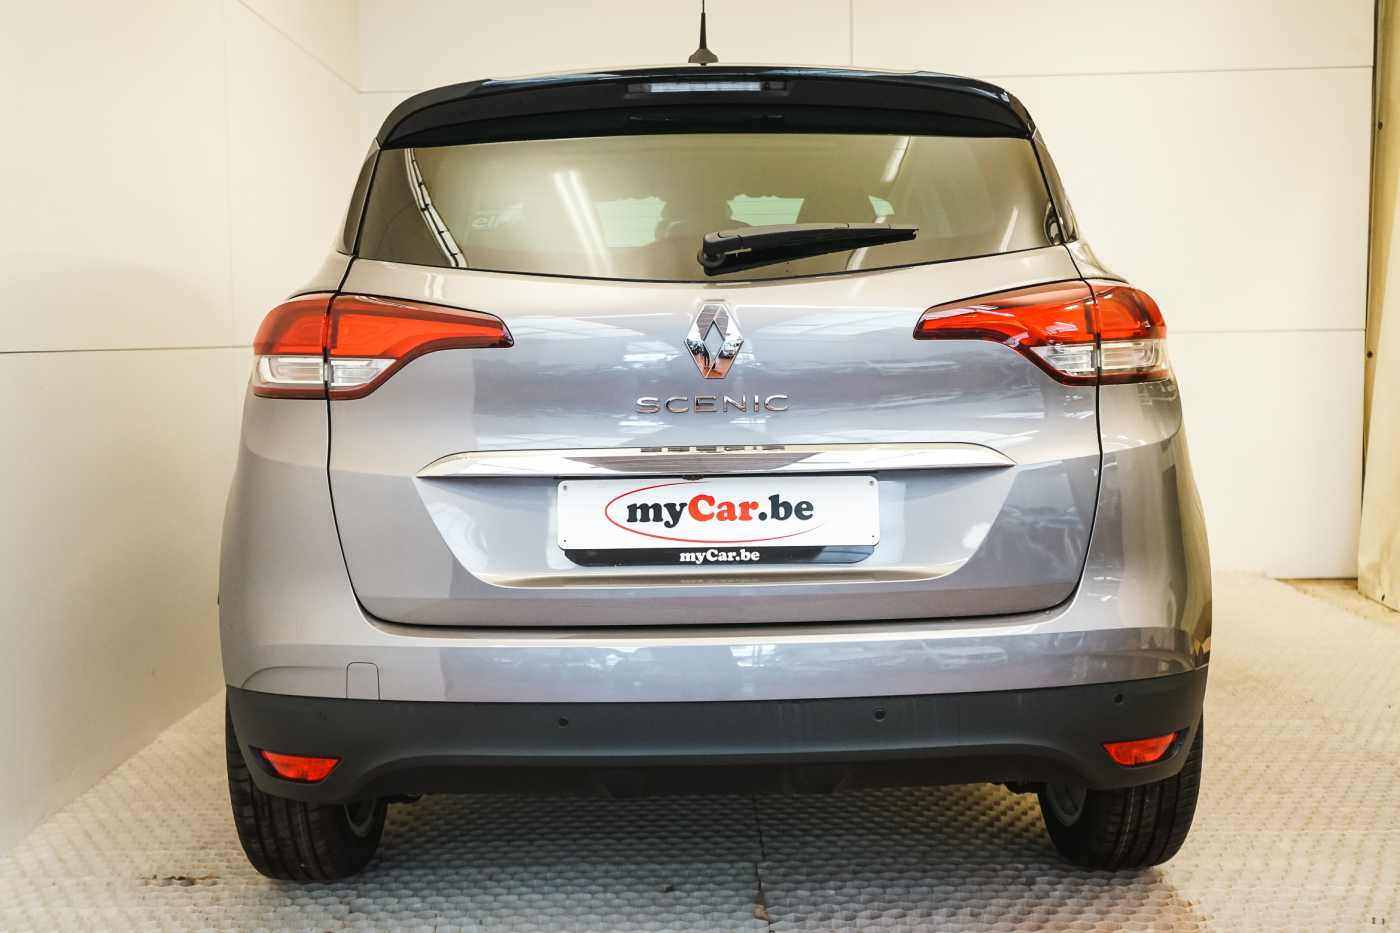 Renault Scenic 1.33 TCe Intense 140 // Pano, Camera, Navi 5/30